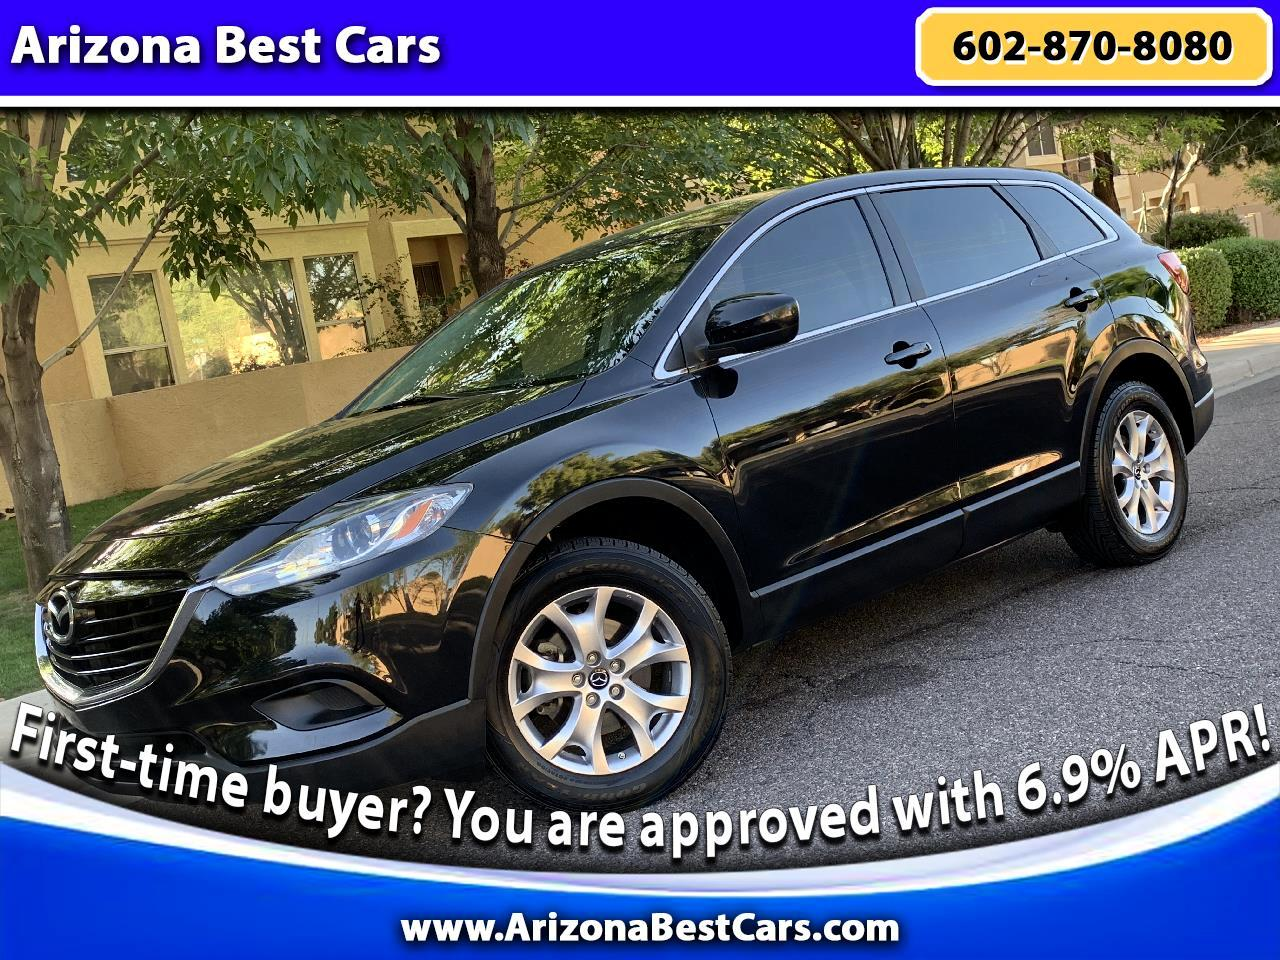 2014 Mazda CX-9 2WD 4dr Touring